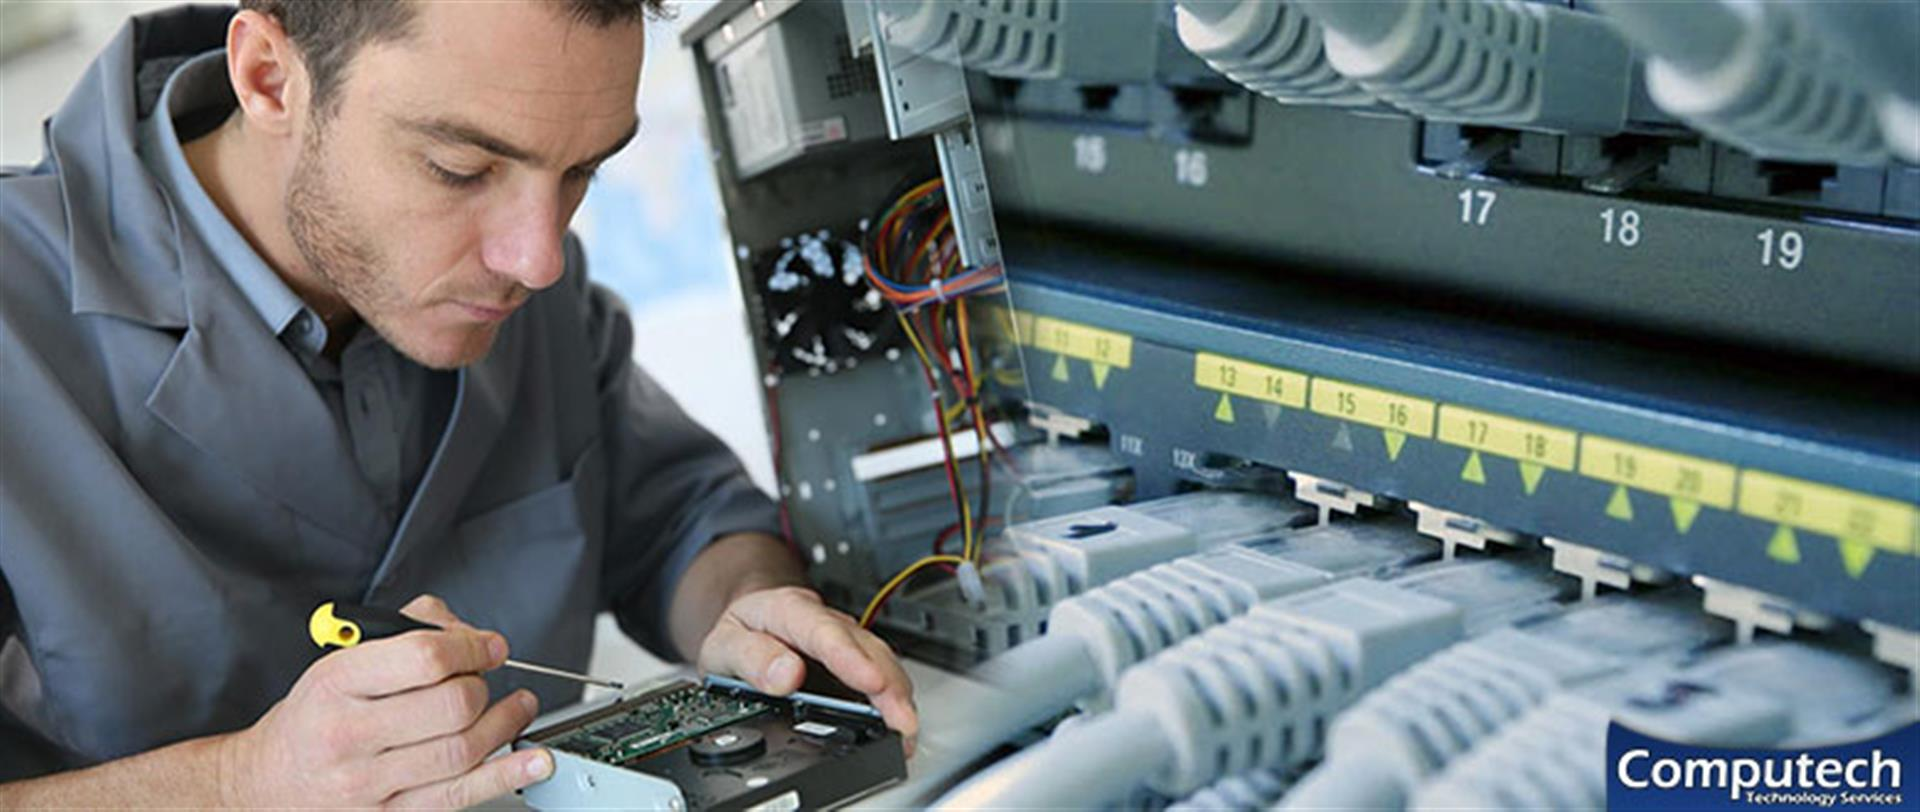 Collierville Tennessee On Site Computer PC & Printer Repair, Network, Voice & Data Cabling Services